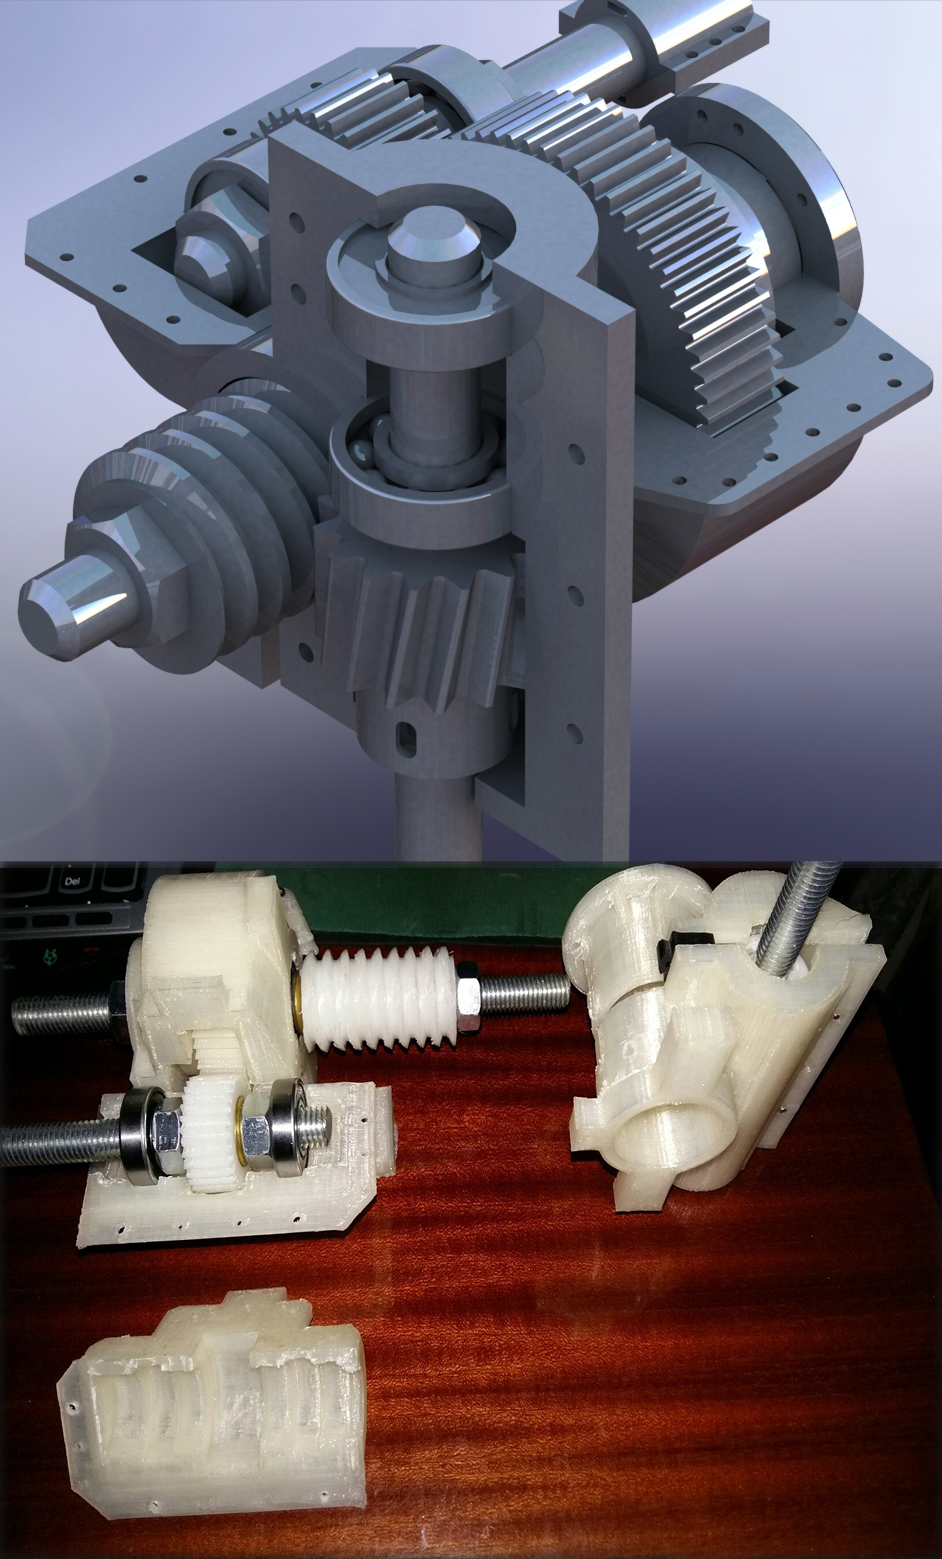 3Dmodelling and Prototyping of gear box with help 3Dprinting